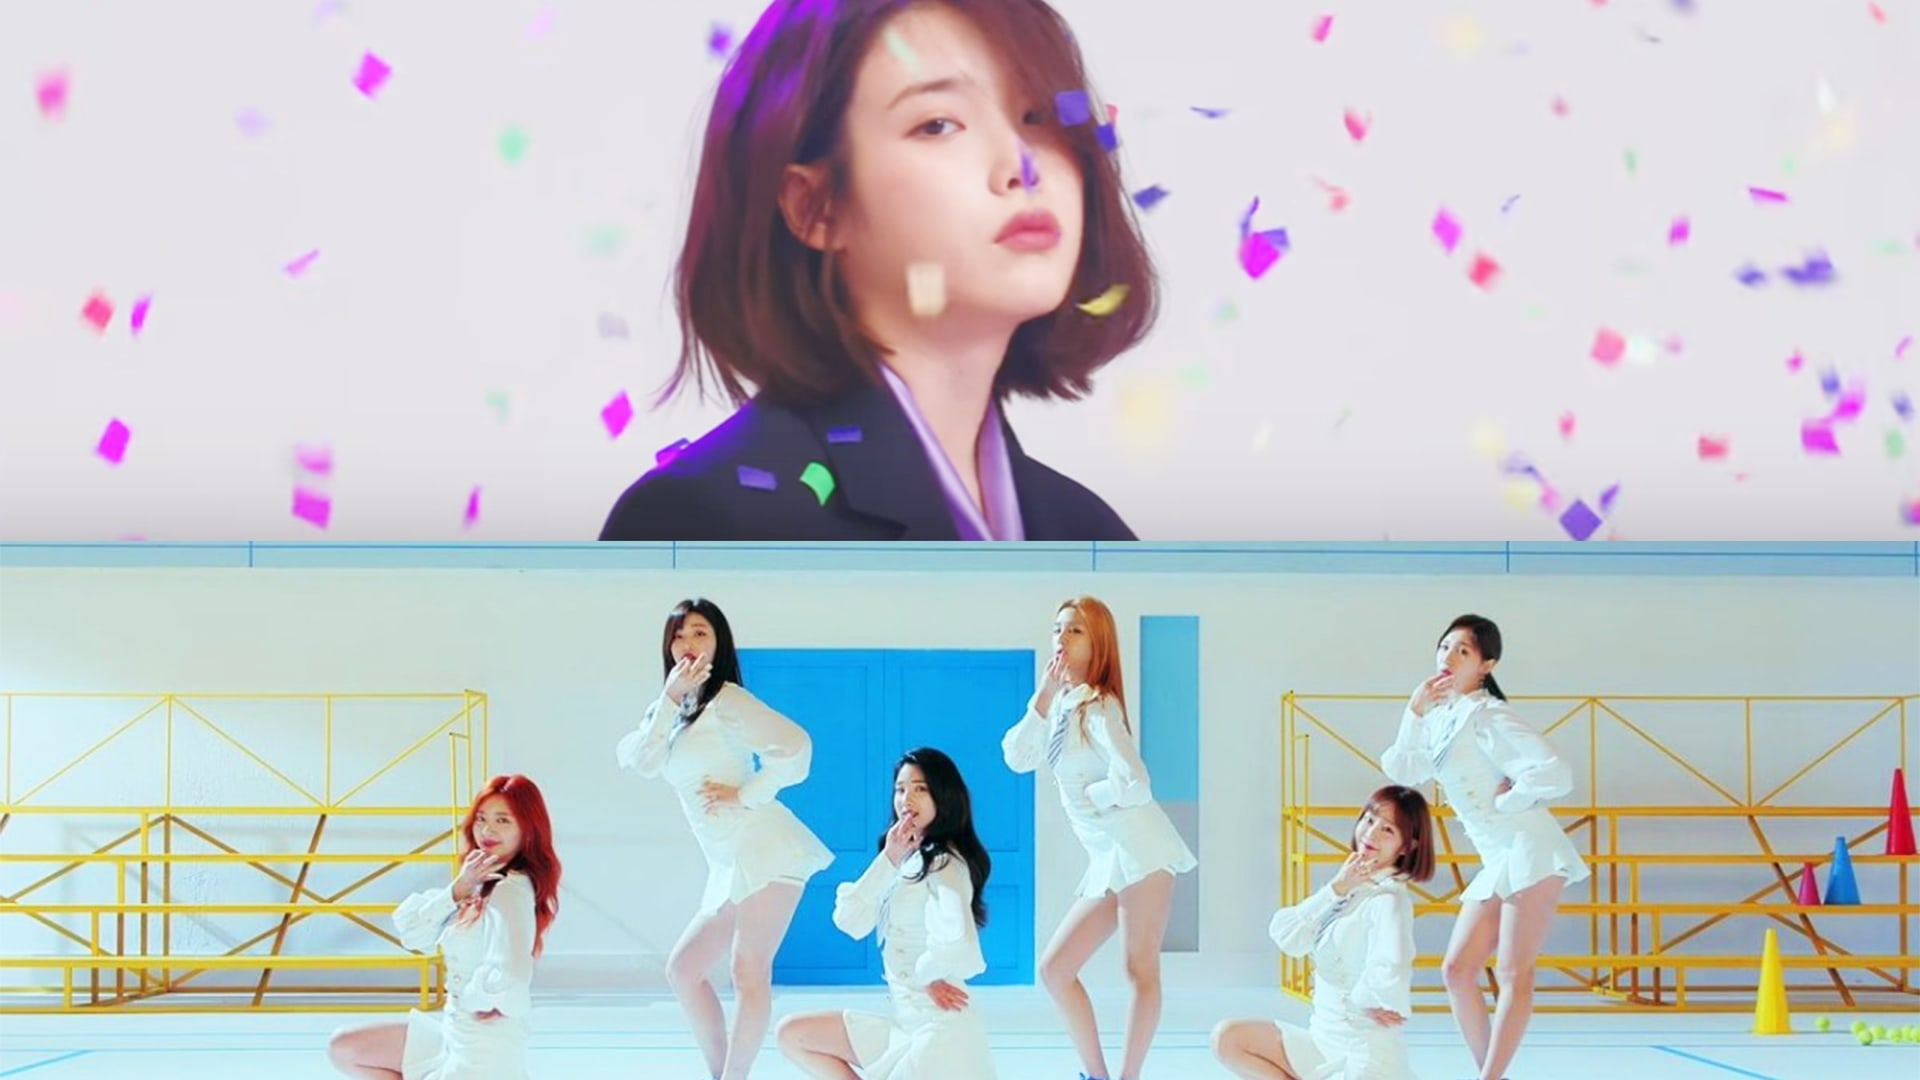 """People Are Contesting LABOUM's Unexpected Win Over IU On Last Night's Episode Of """"Music Bank"""""""